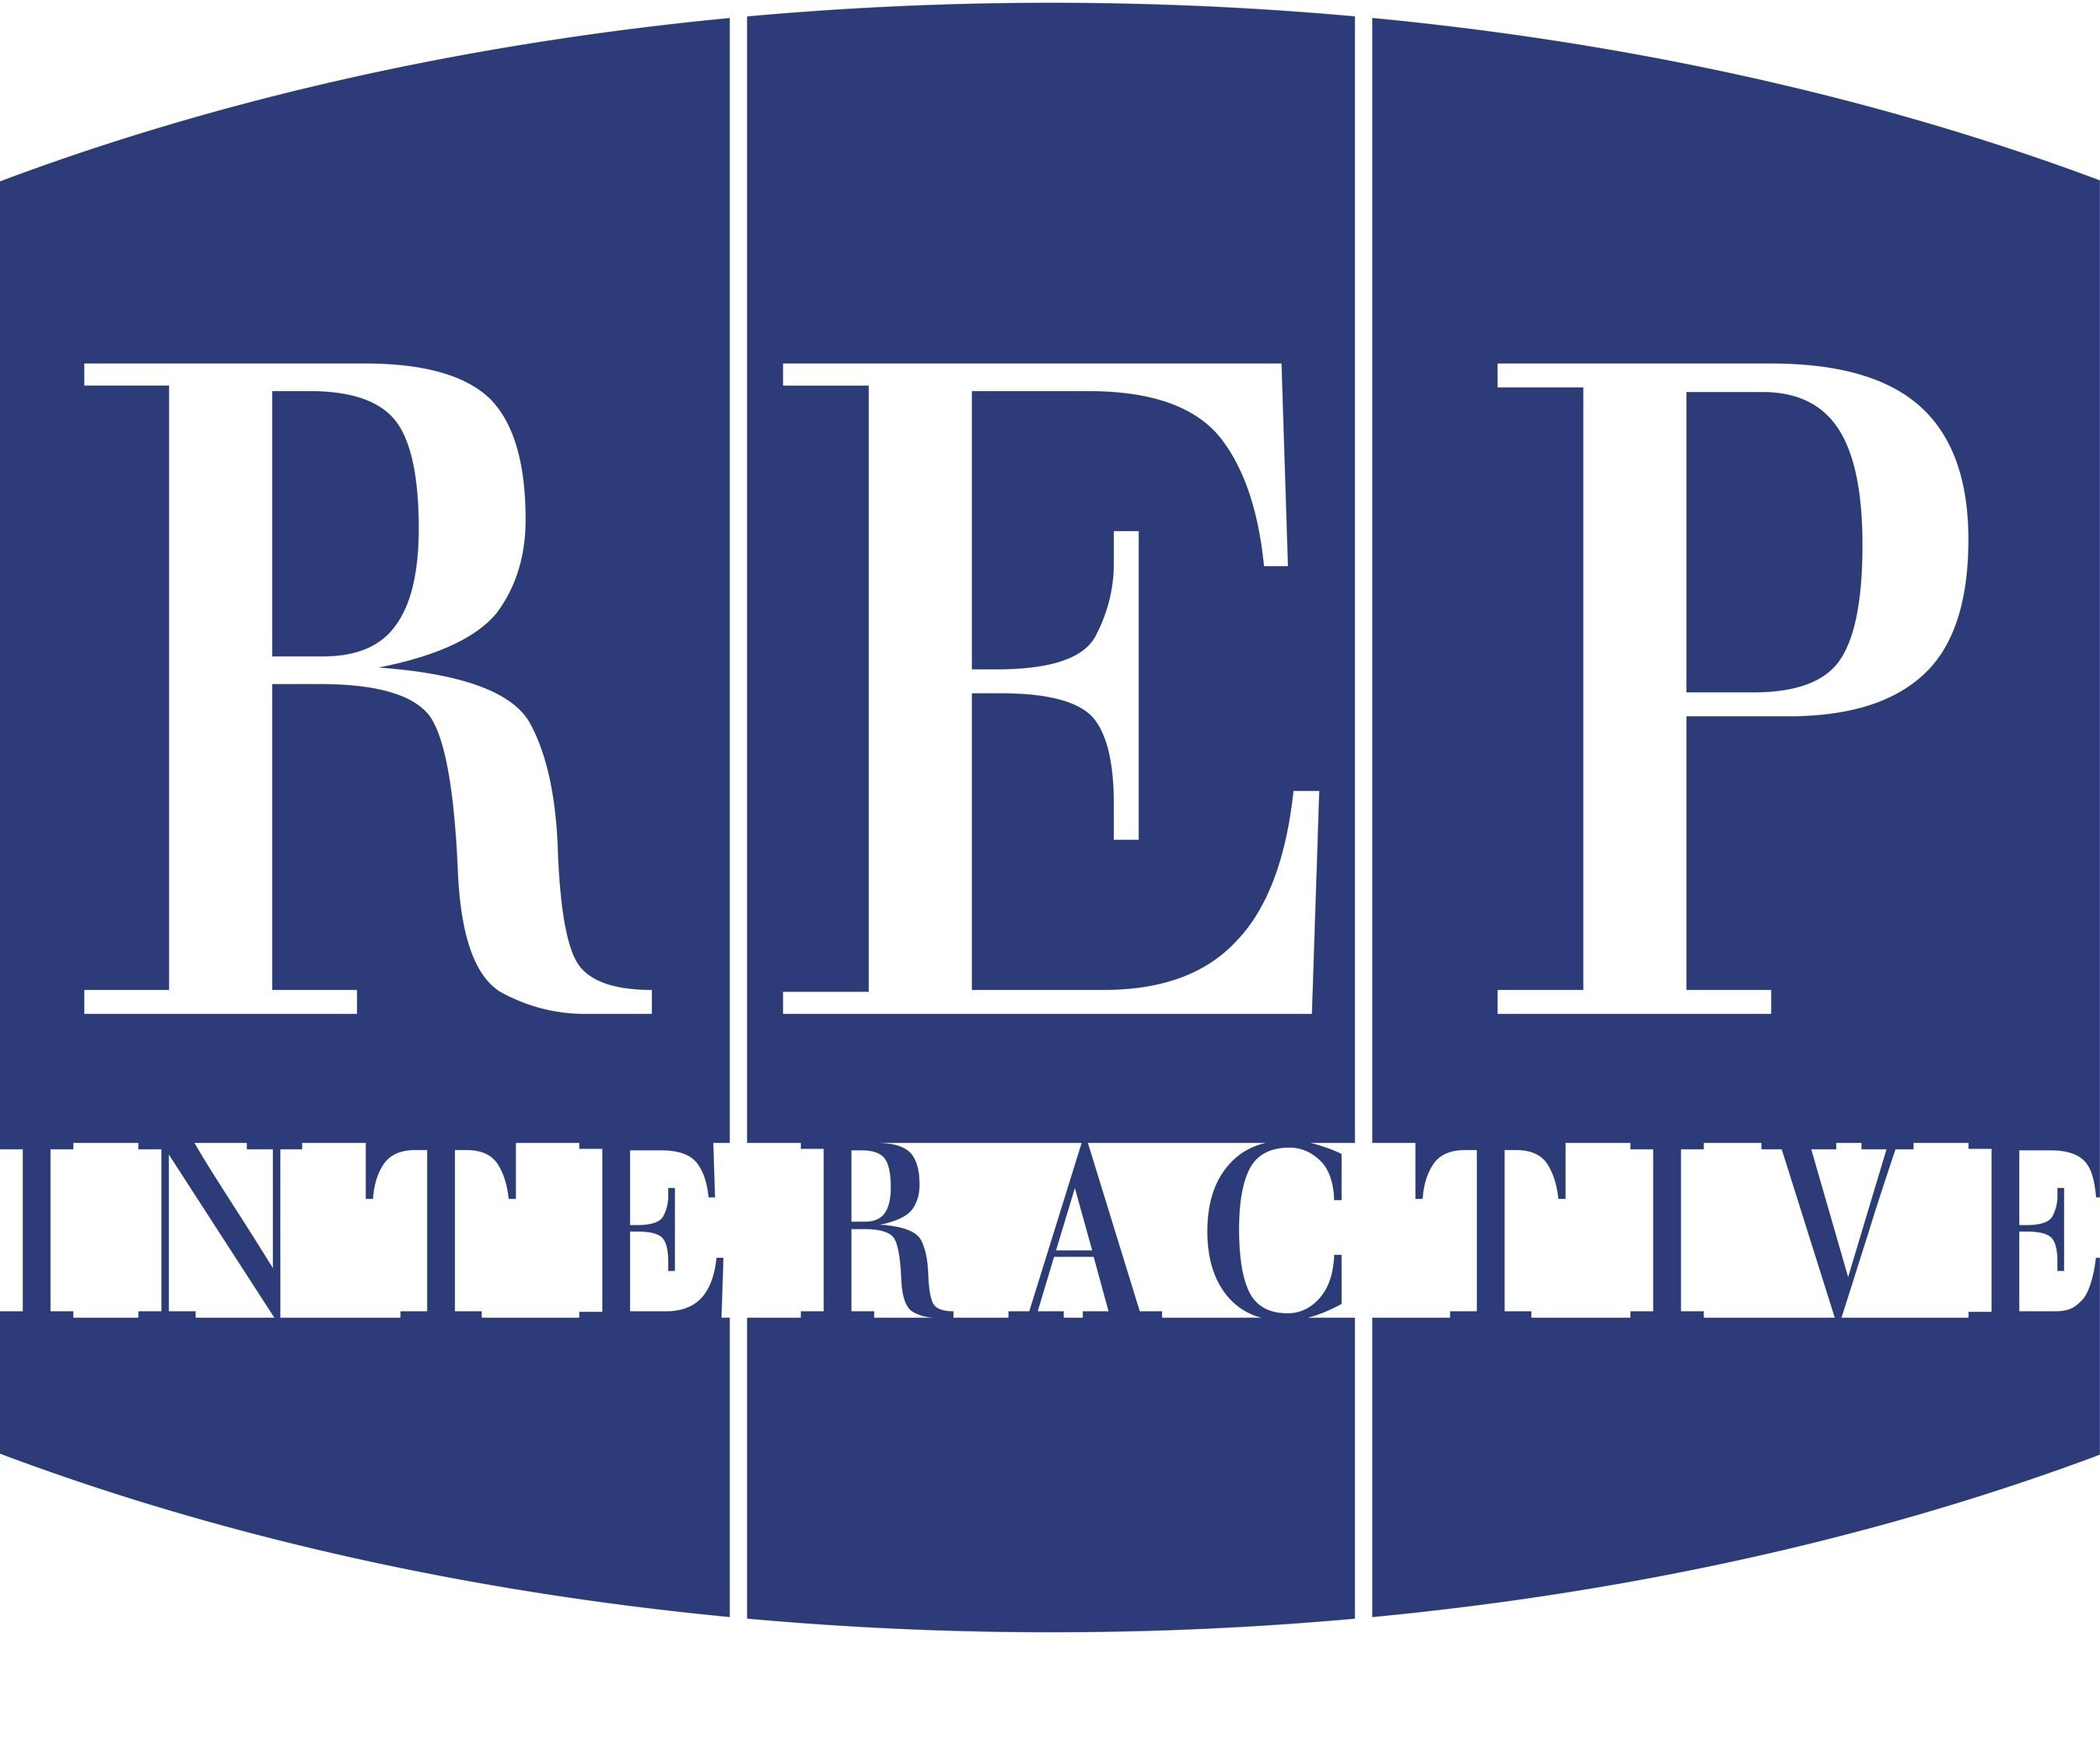 REP Interactive: From a homework assignment to one of the fastest growing companies in the world